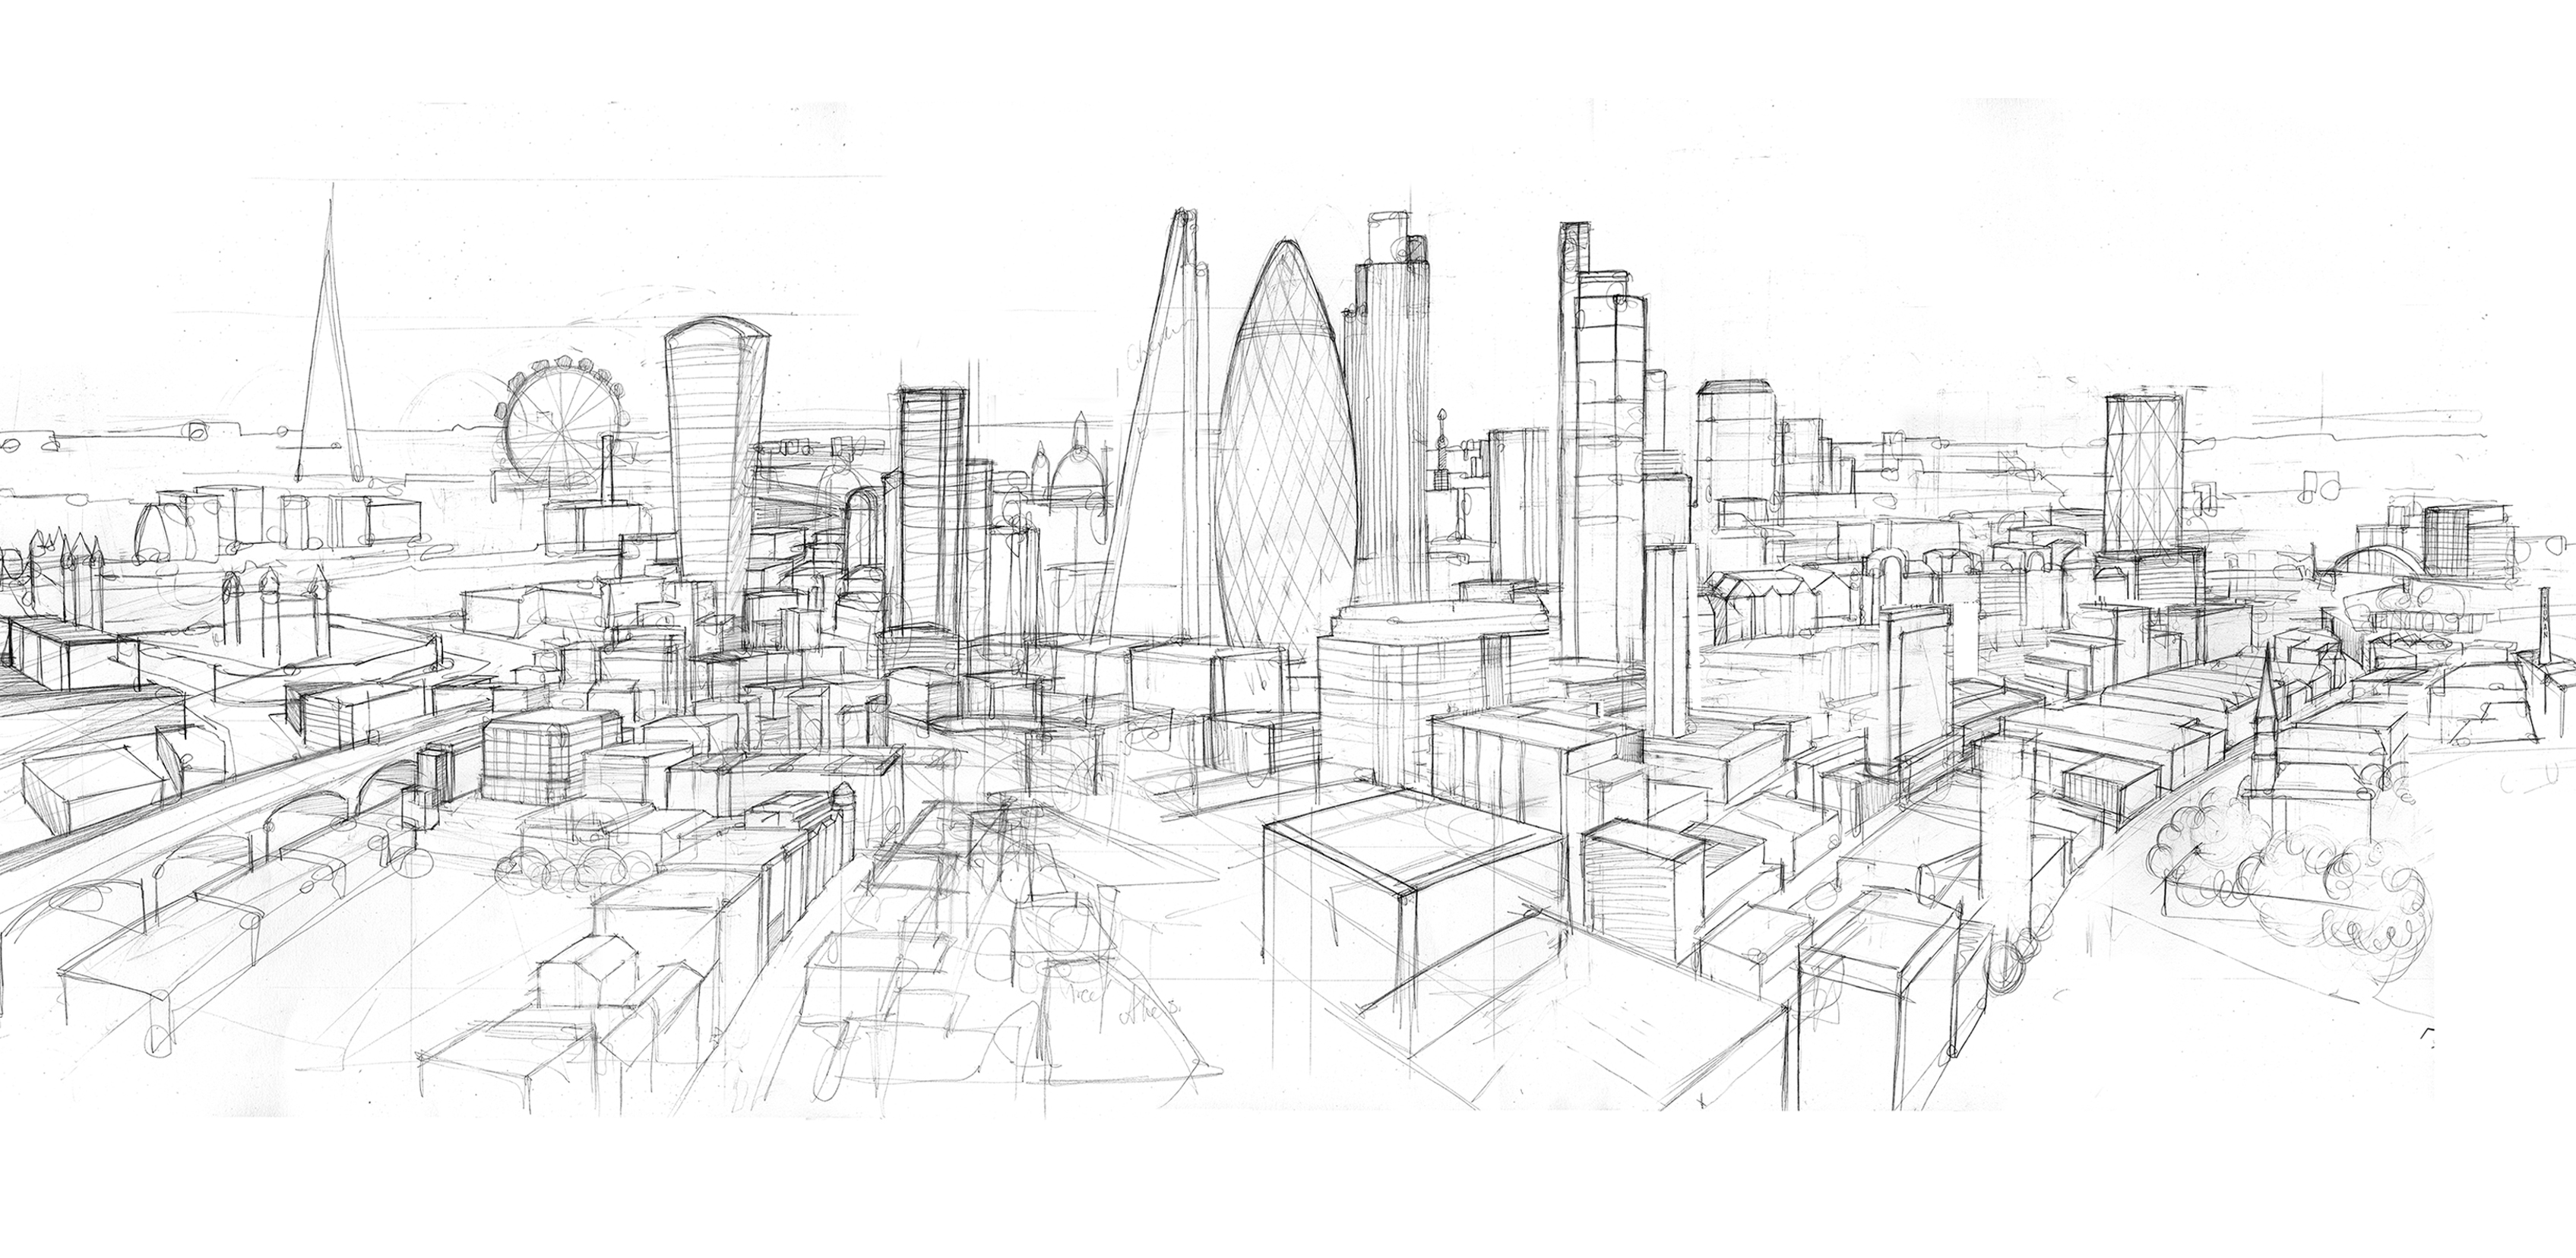 Drawn skyline london Illustrated sketch panorama2 extended sketch